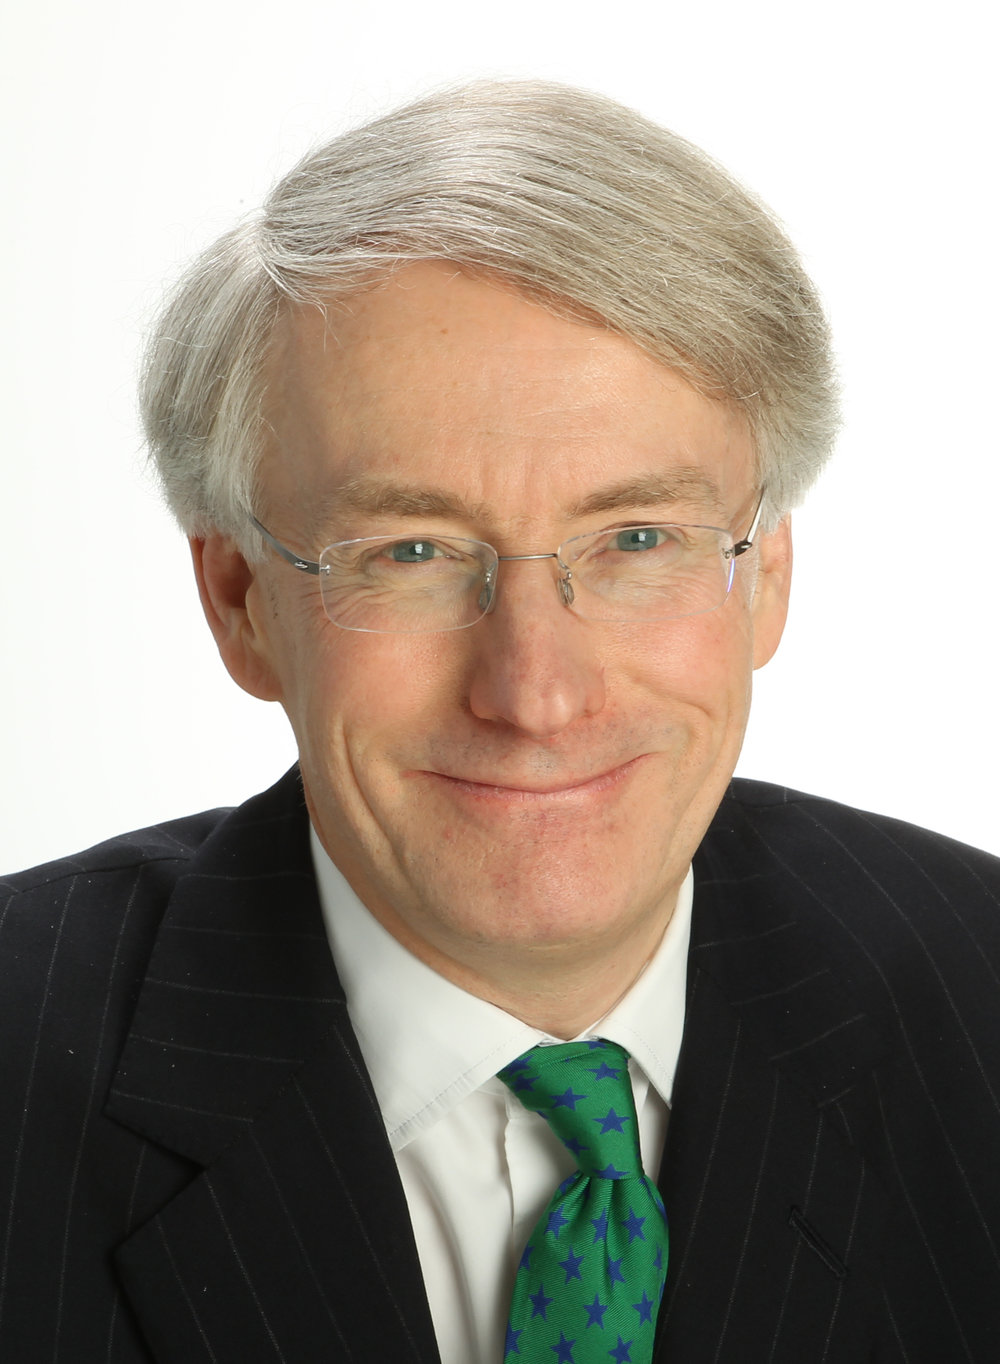 Jeremy Nicholson QC photo June 2014 - HiRes.jpg